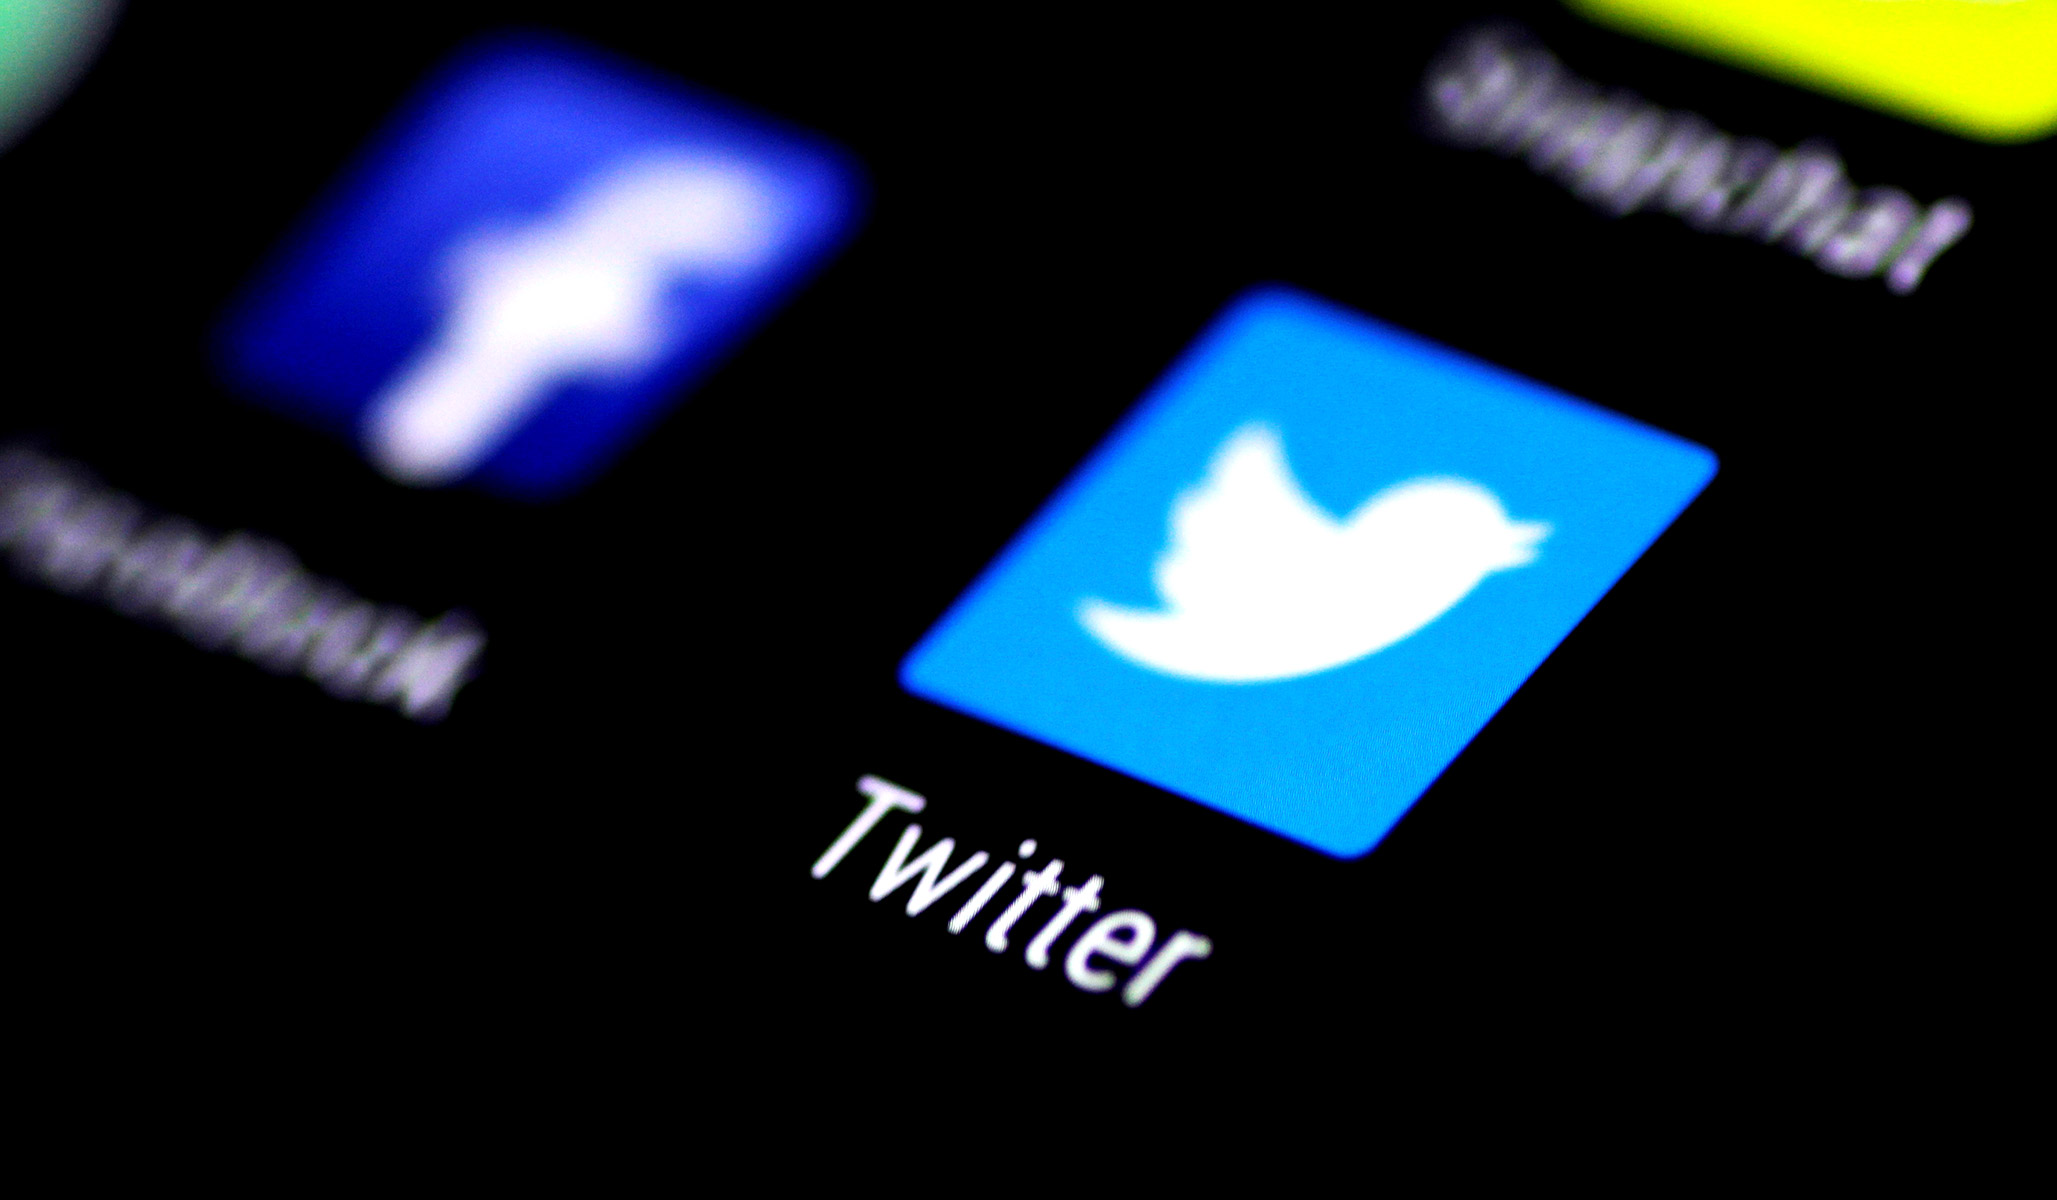 The Second Circuit Court of Appeals Was Wrong to Rule That Trump Can't Block Twitter Users